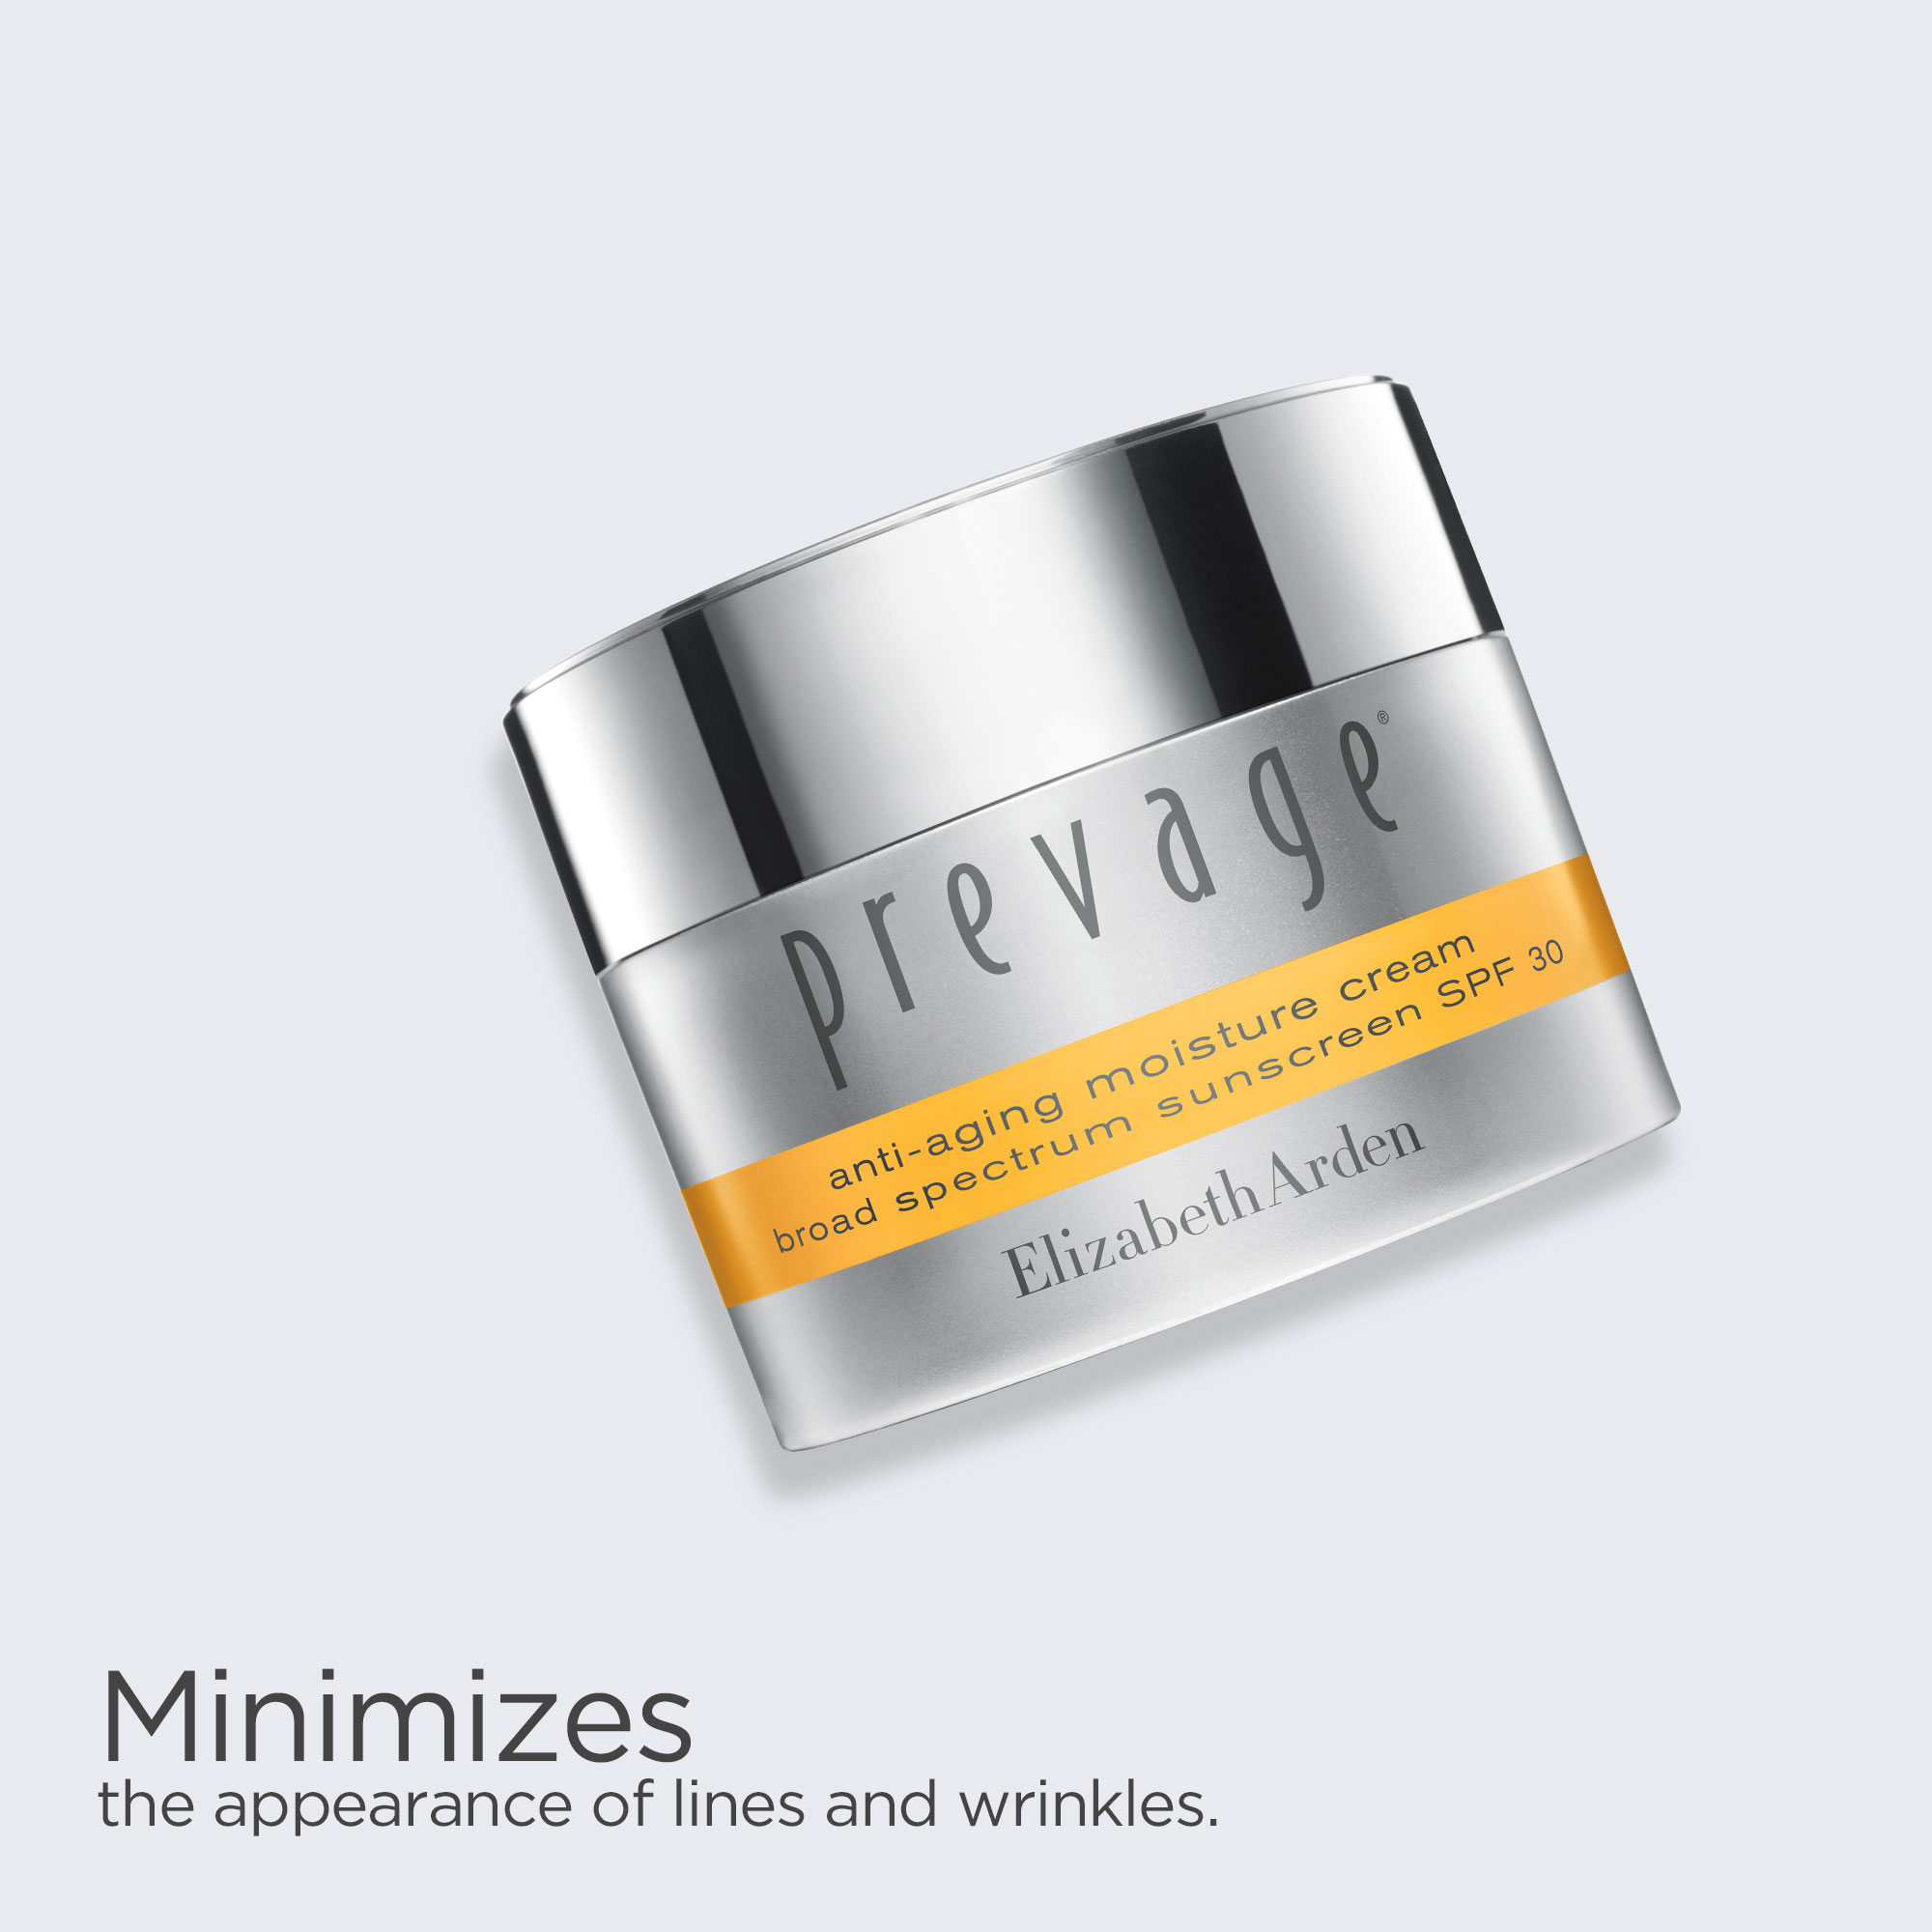 Prevage Day Cream minimizes the appearance of lines and wrinkles.